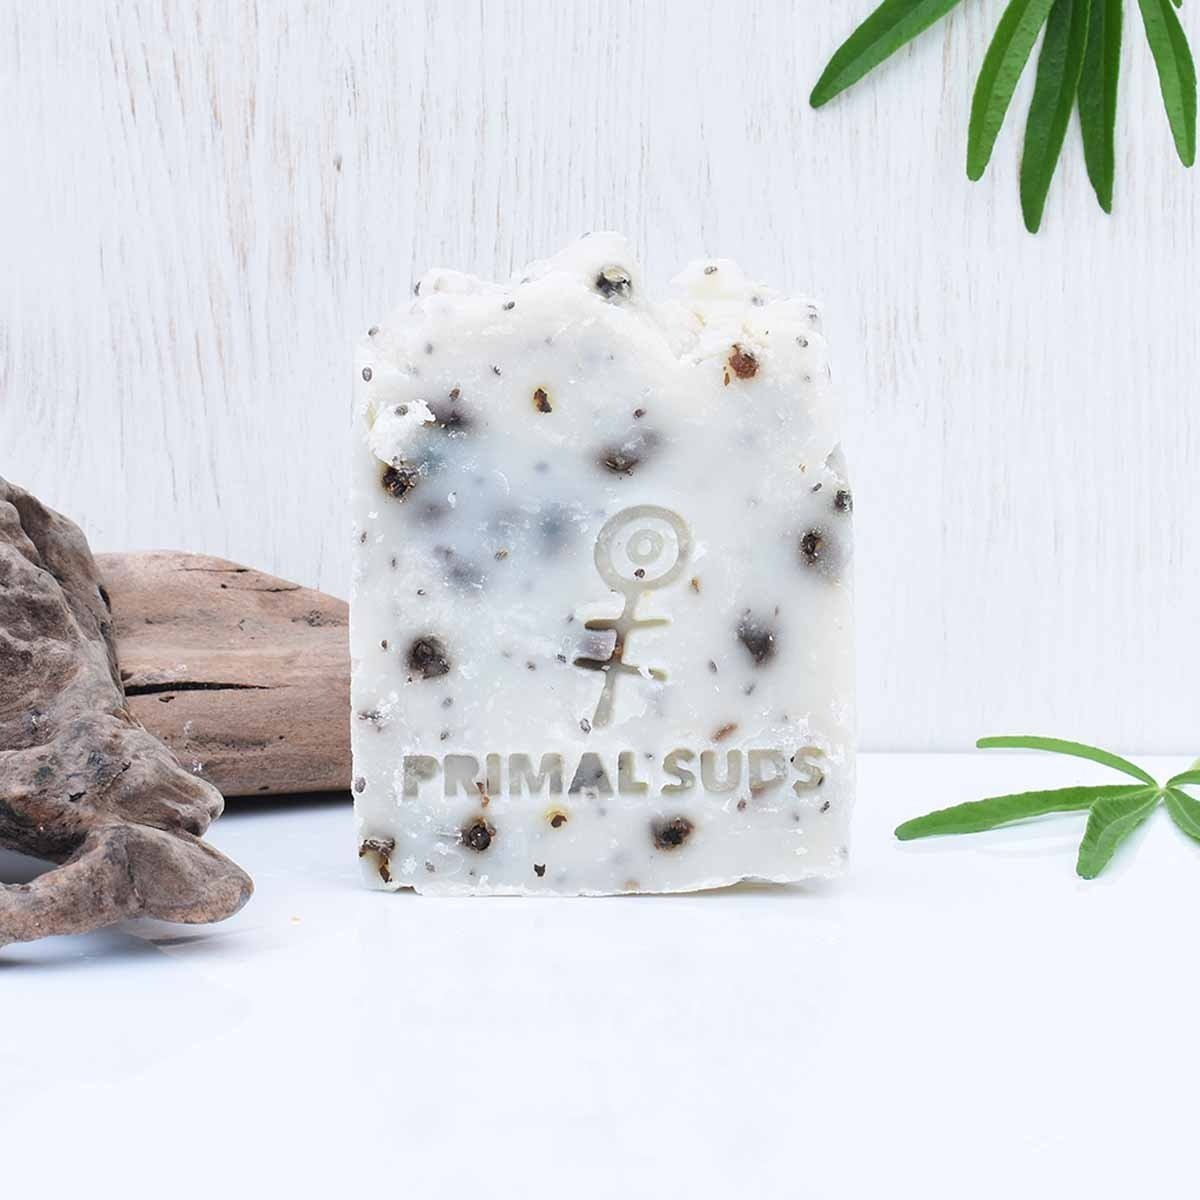 vegan soap bar soul primal suds background 1